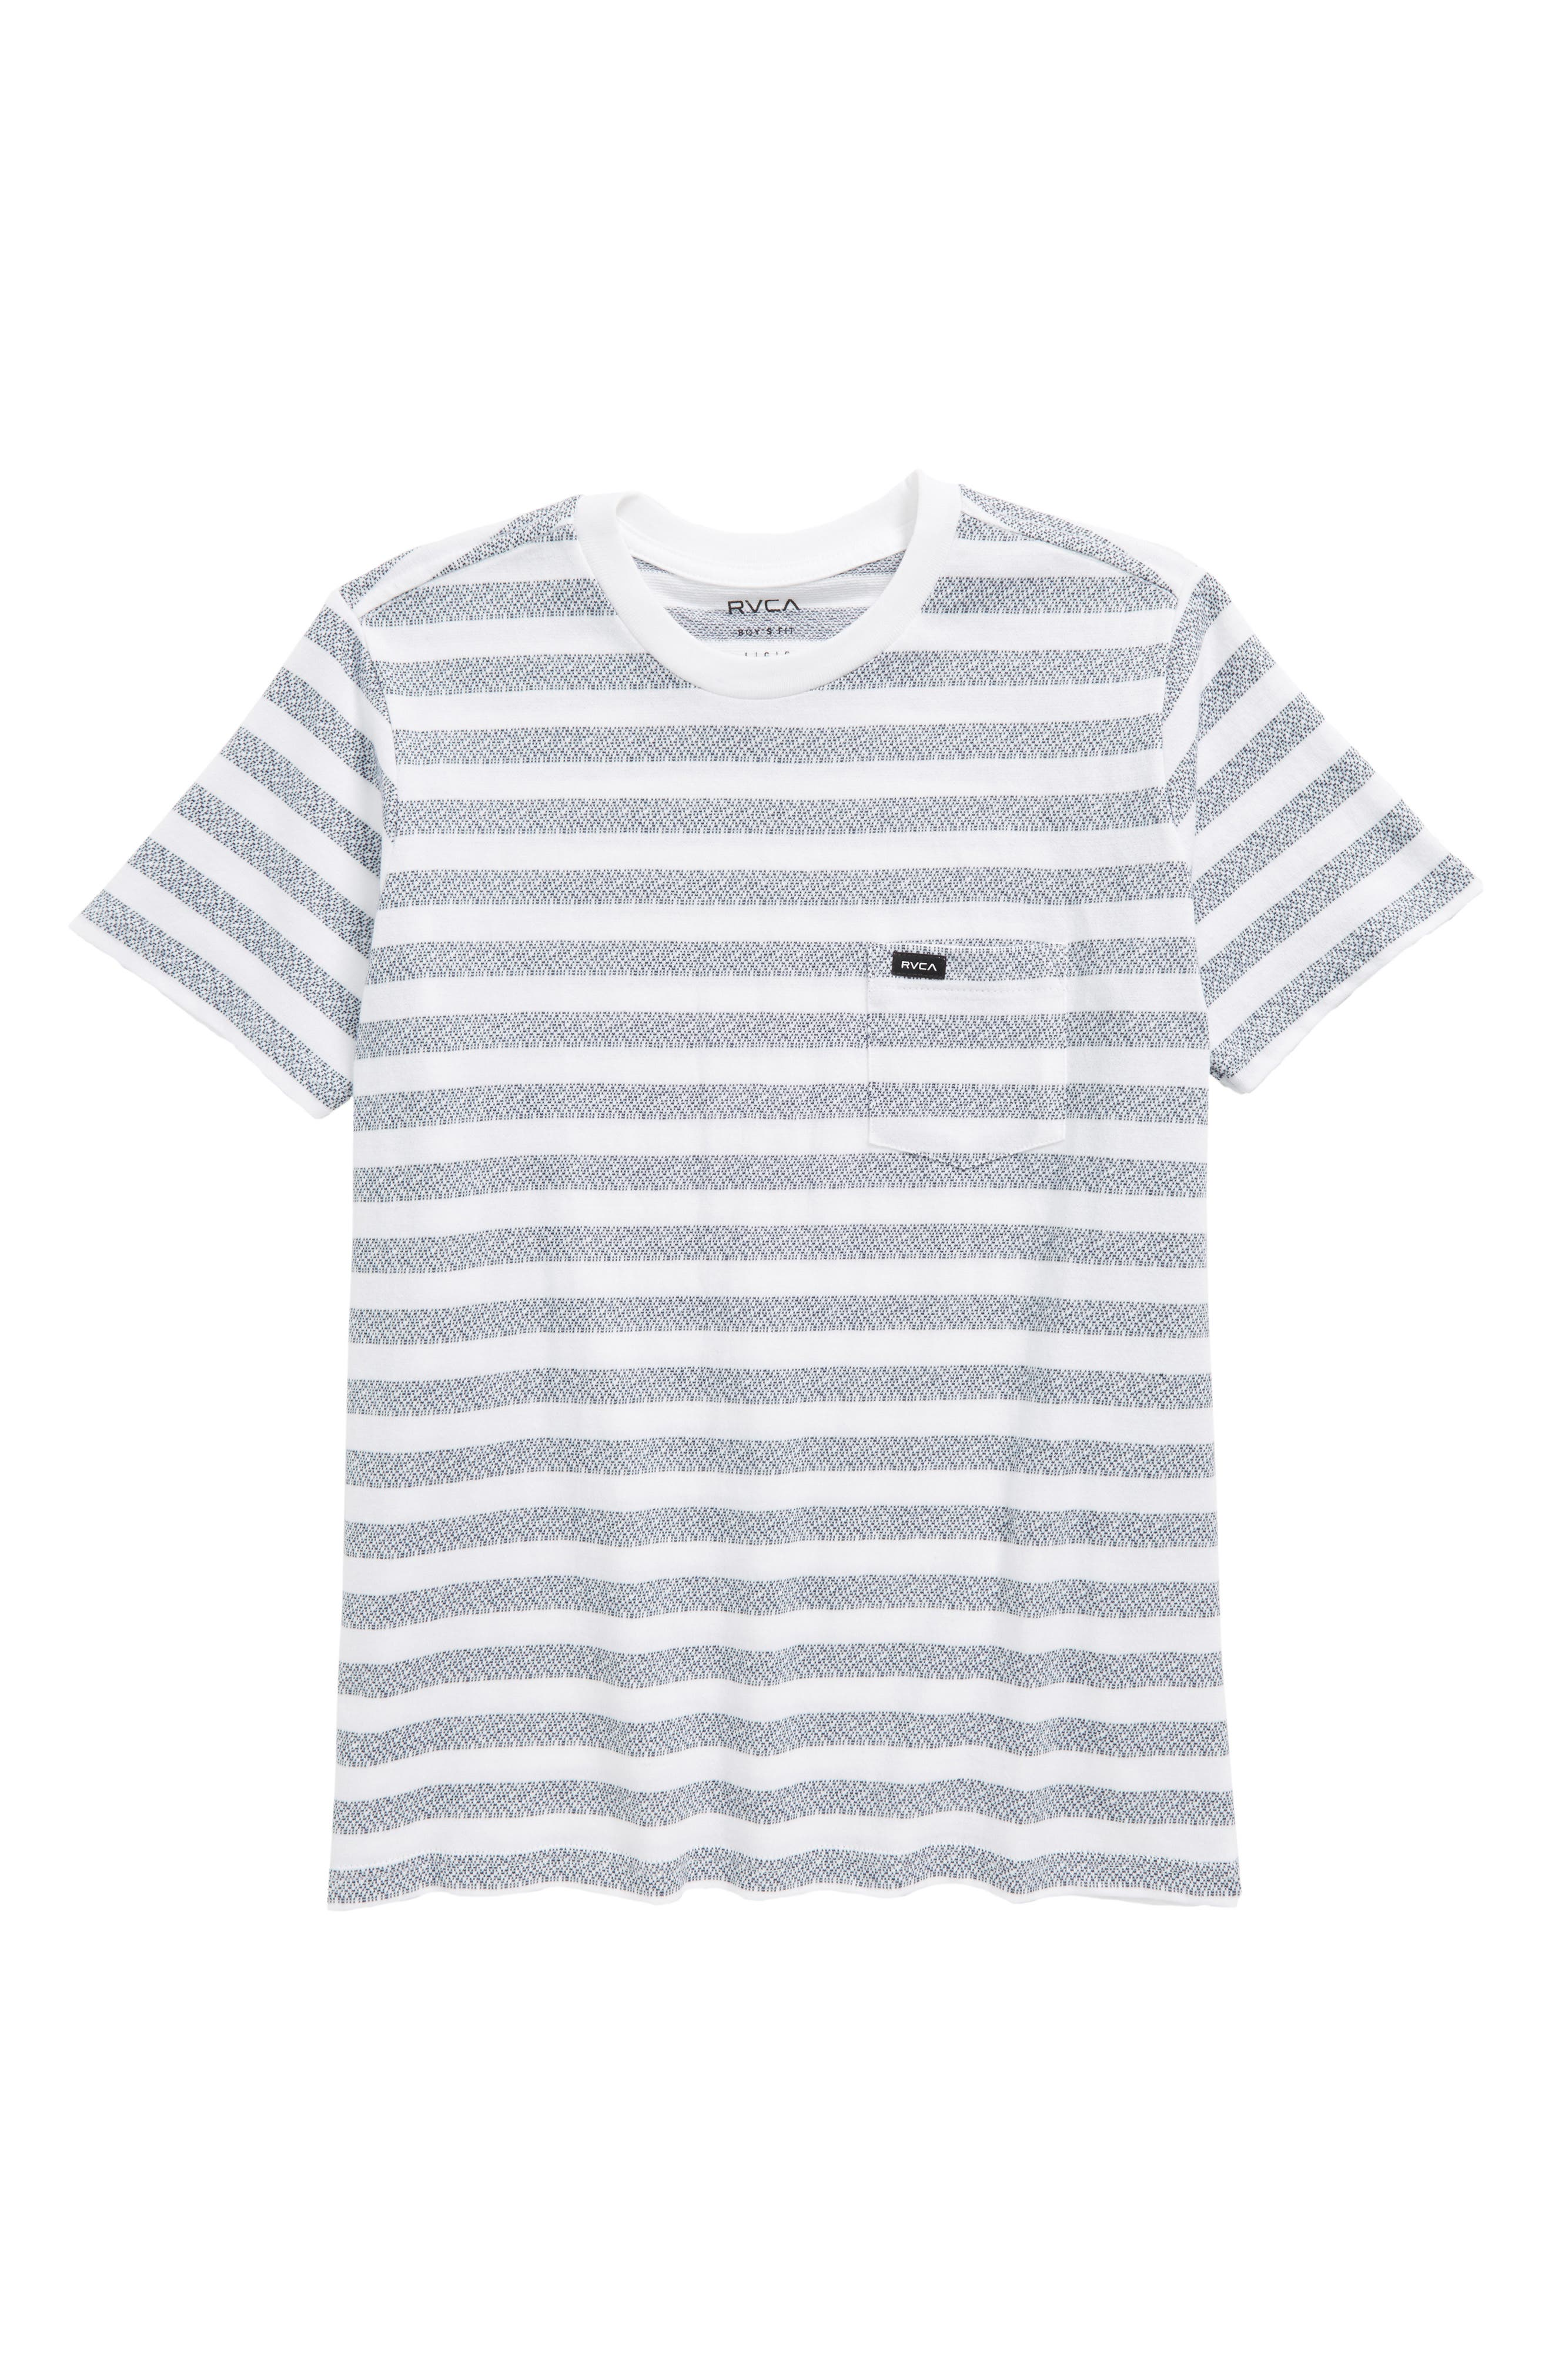 Alternate Image 1 Selected - RVCA What's Shakin' Stripe T-Shirt (Big Boys)